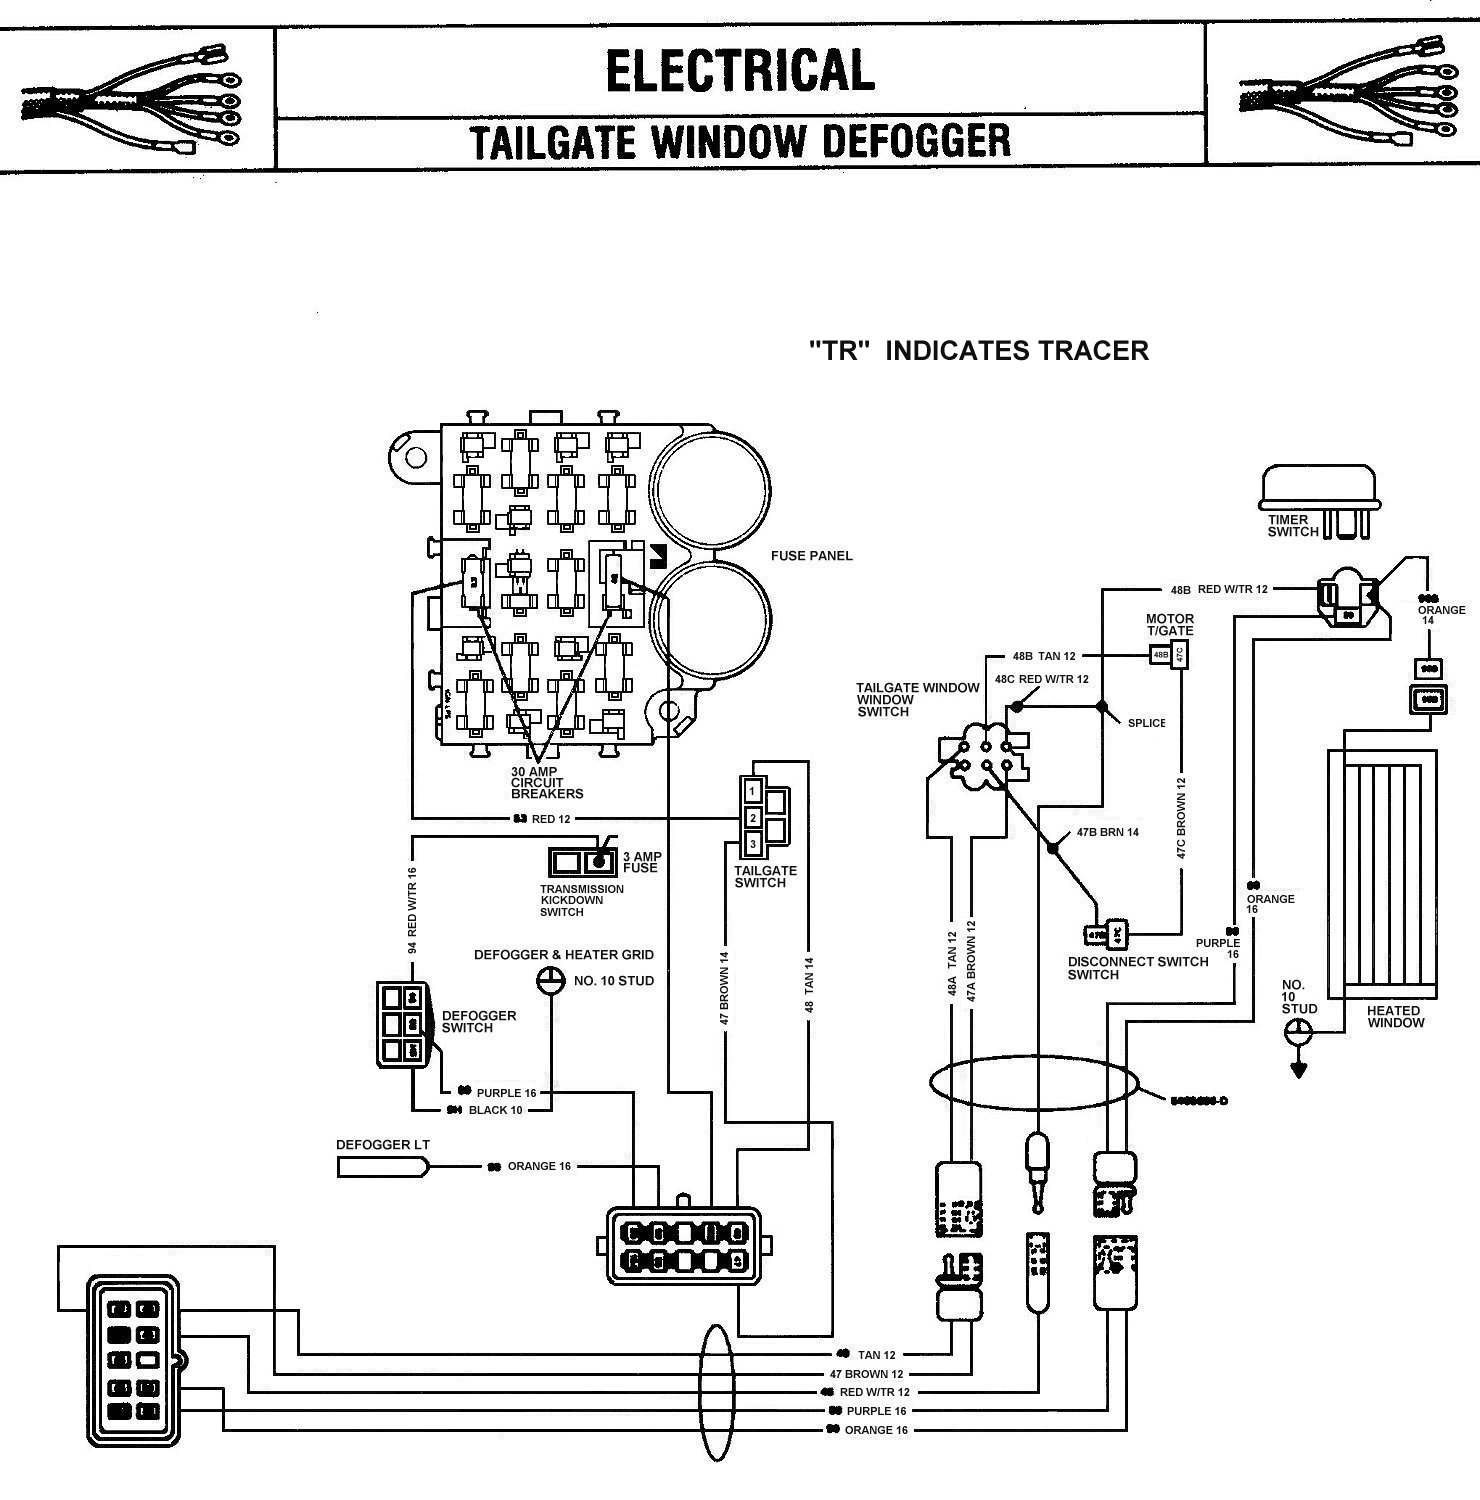 small resolution of 2008 hummer h3 wiring diagram